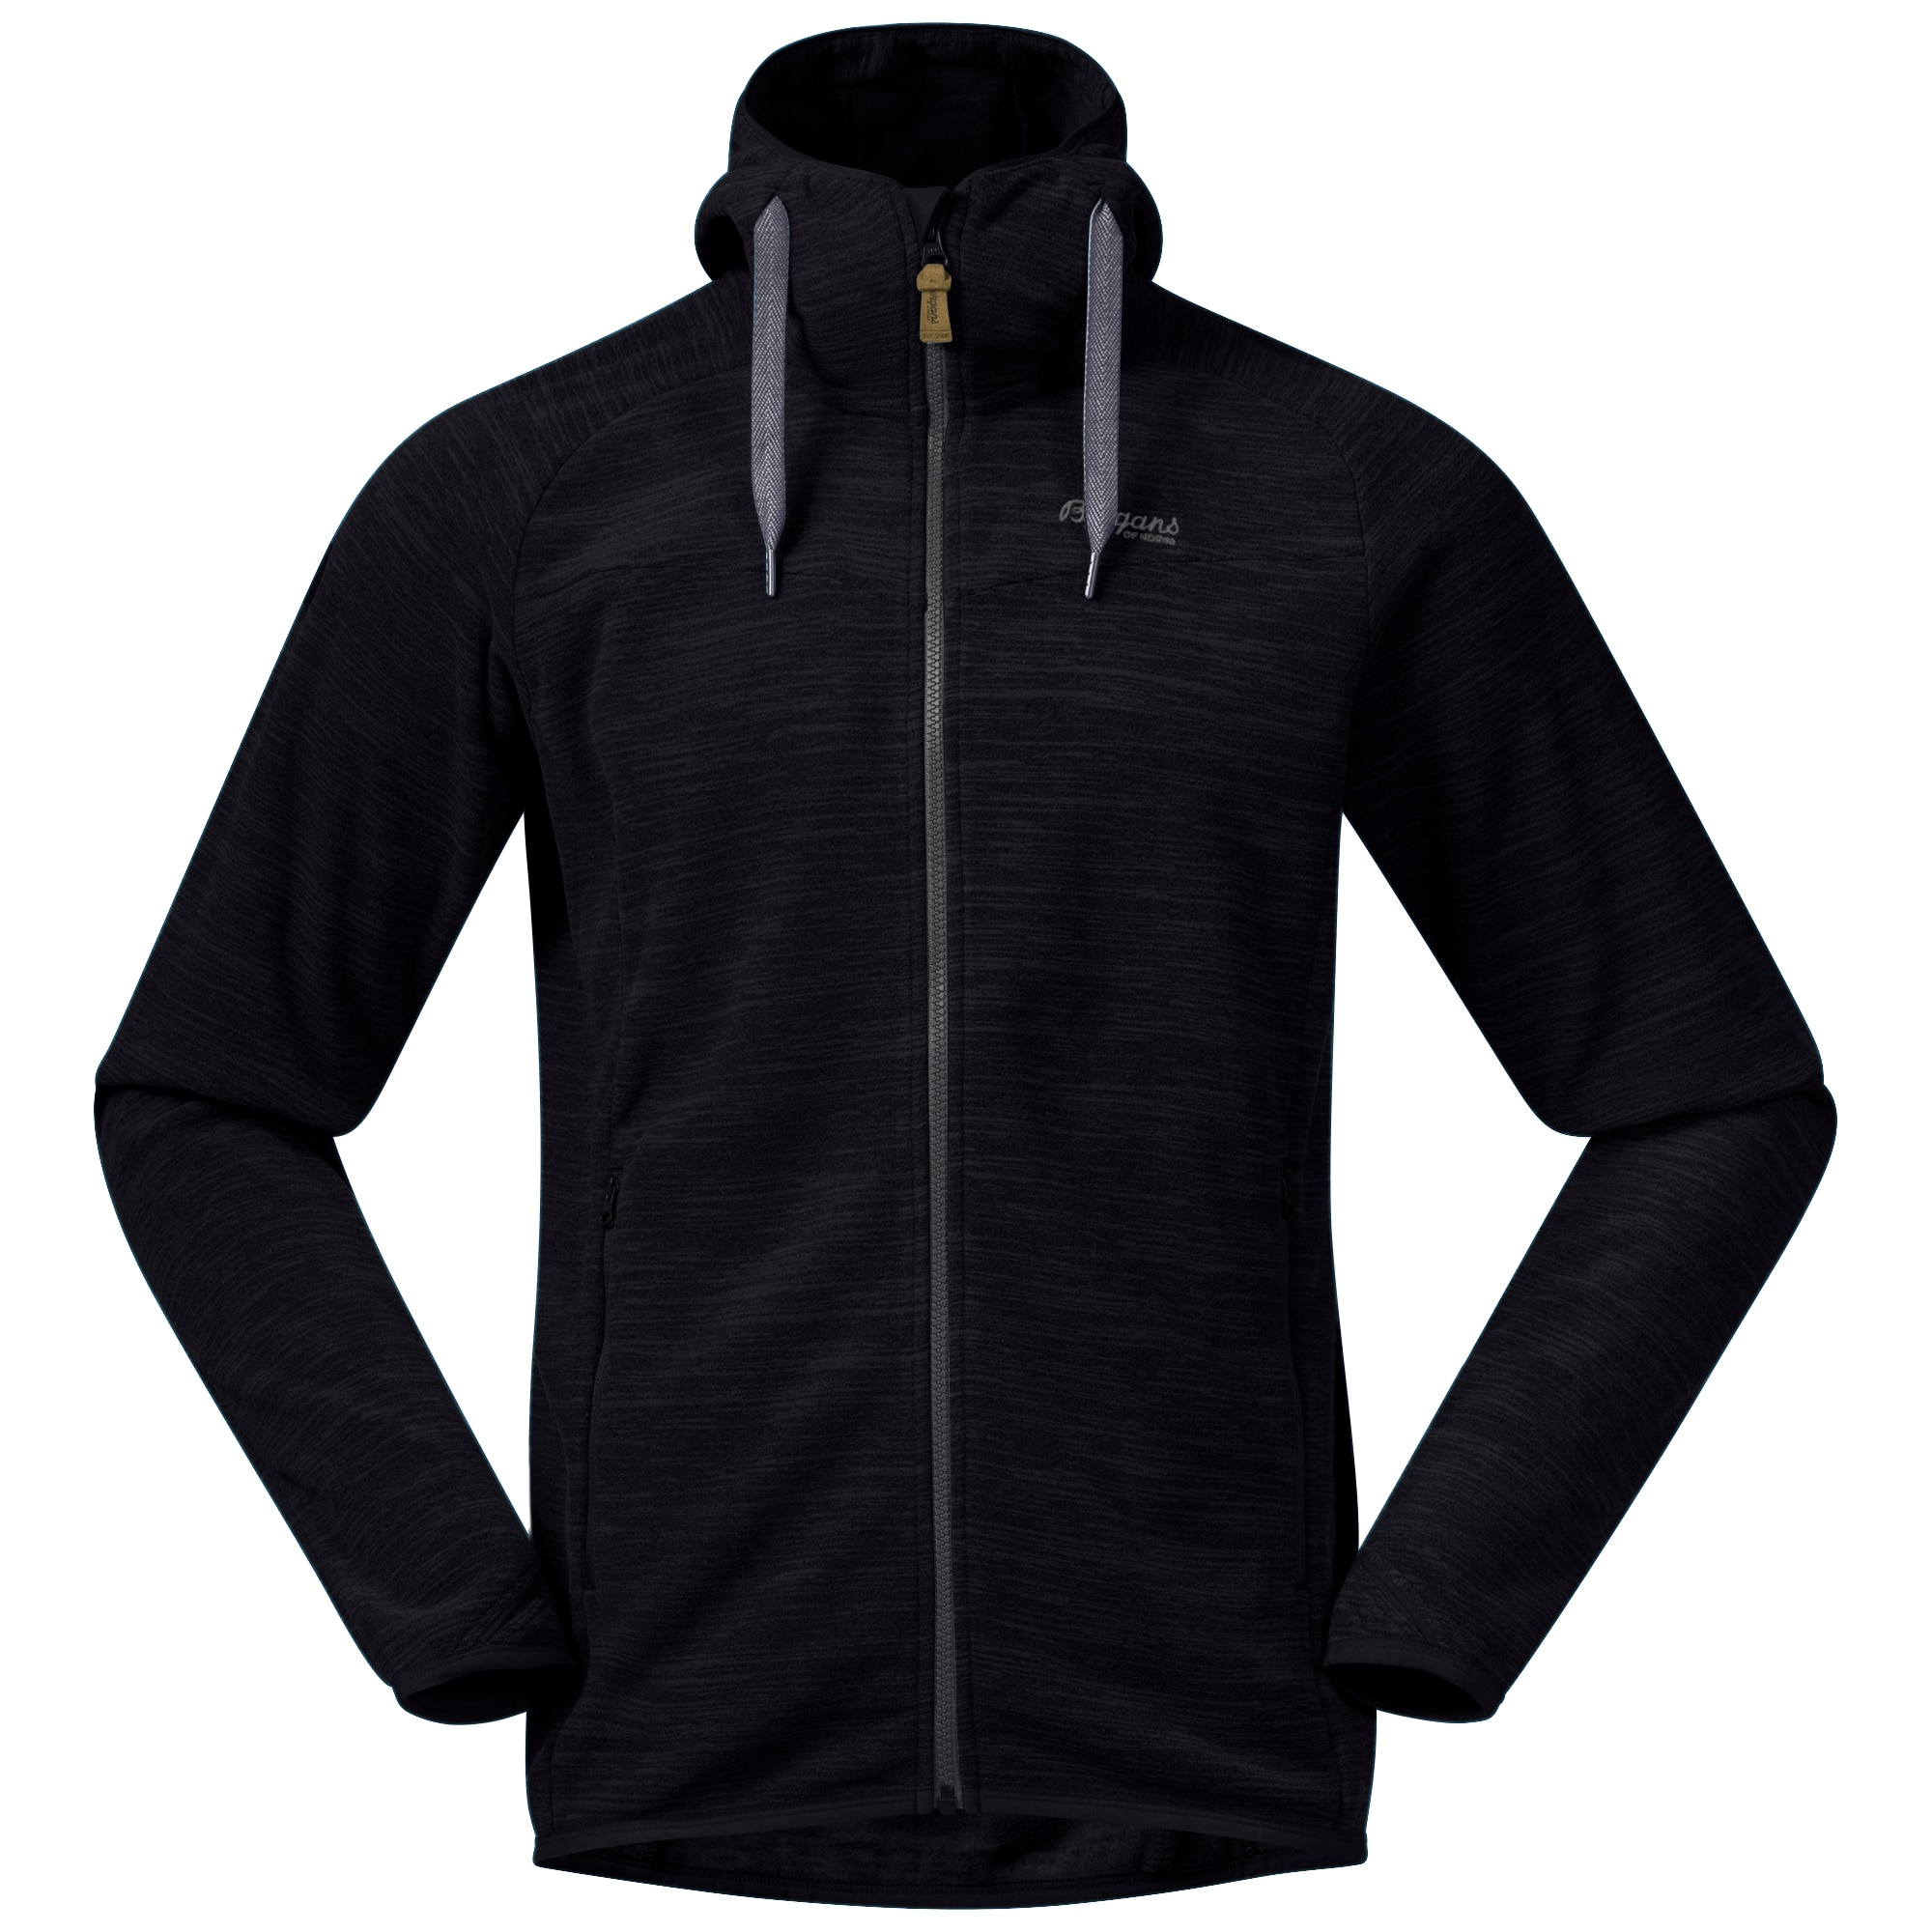 Hareid Fleece Jacket